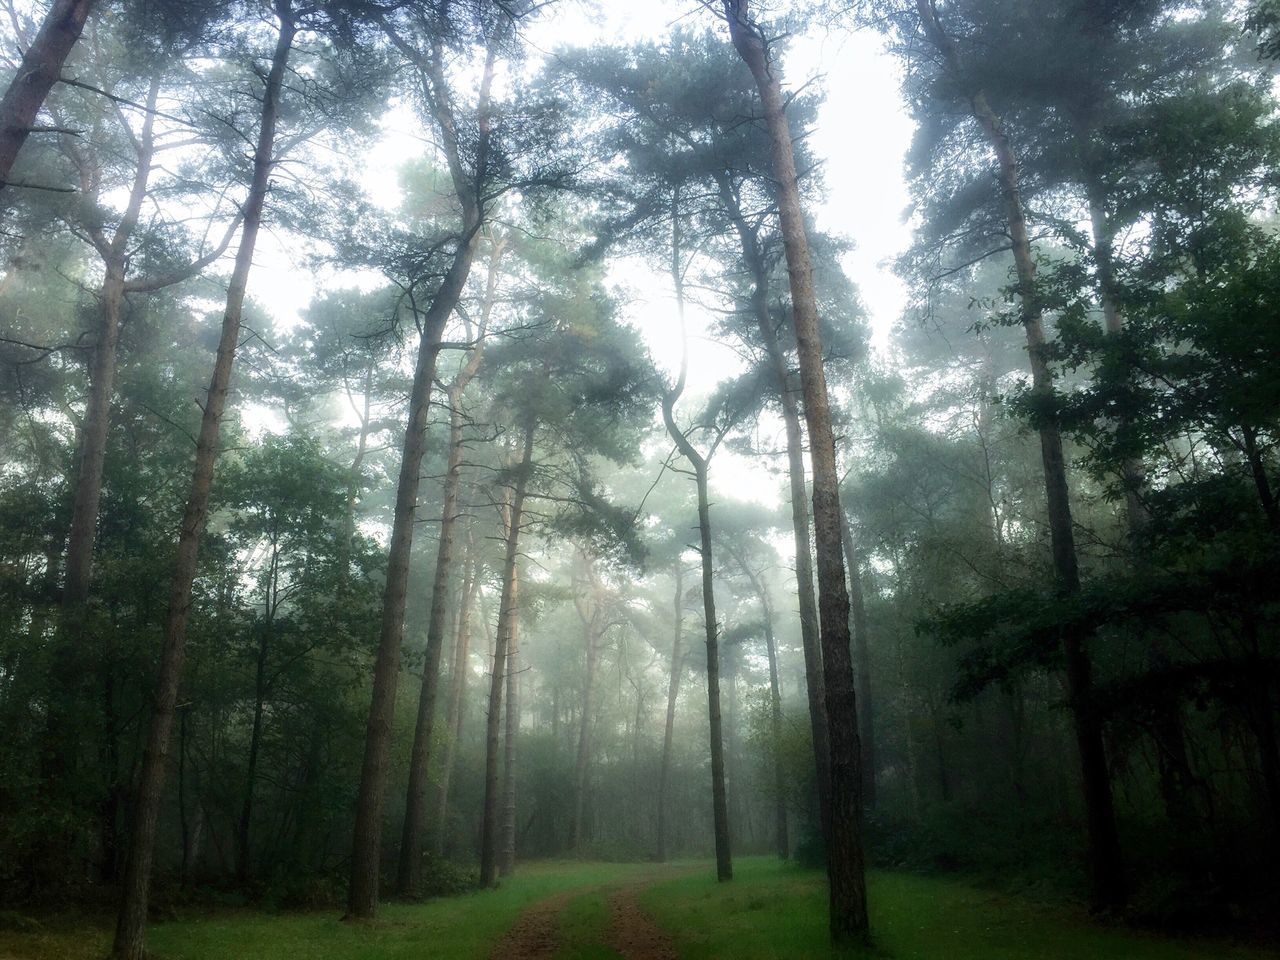 I came across a fallen tree, I felt the branches of it looking at me. Is this the place we used to love? Is this the place that I've been dreaming of? See The World Through My Eyes Somewhere Only We Know Tree Nature Forest Beauty In Nature 8wa Bluewinged Angel Landscape No People Fog Hello World Mist https://youtu.be/Oextk-If8HQ